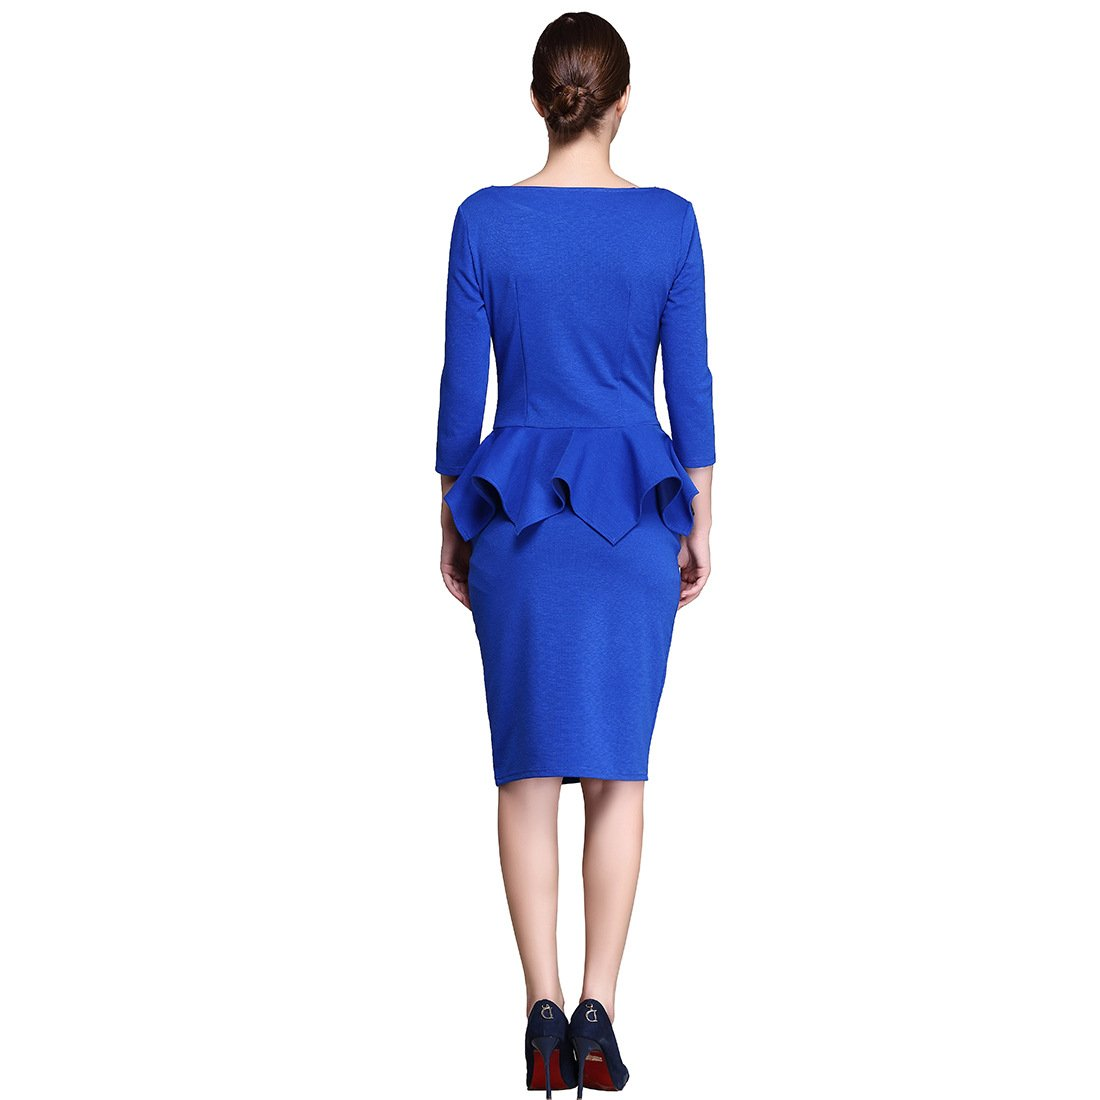 KAXIDY Ladies Bodycon Prom Dress Pencil Dresses Casual Party Workwear Business Wear Prom Dress: Amazon.co.uk: Clothing